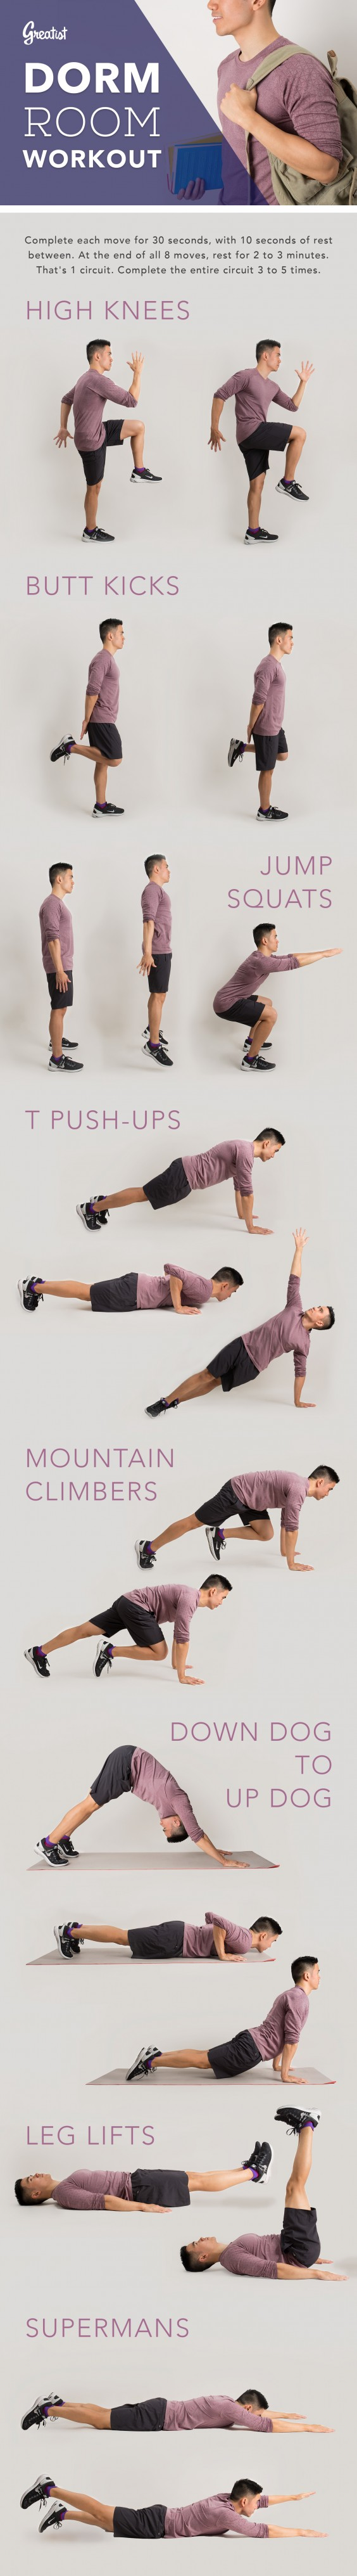 8 Bodyweight Exercises To Try In Your Dorm Room Part 78